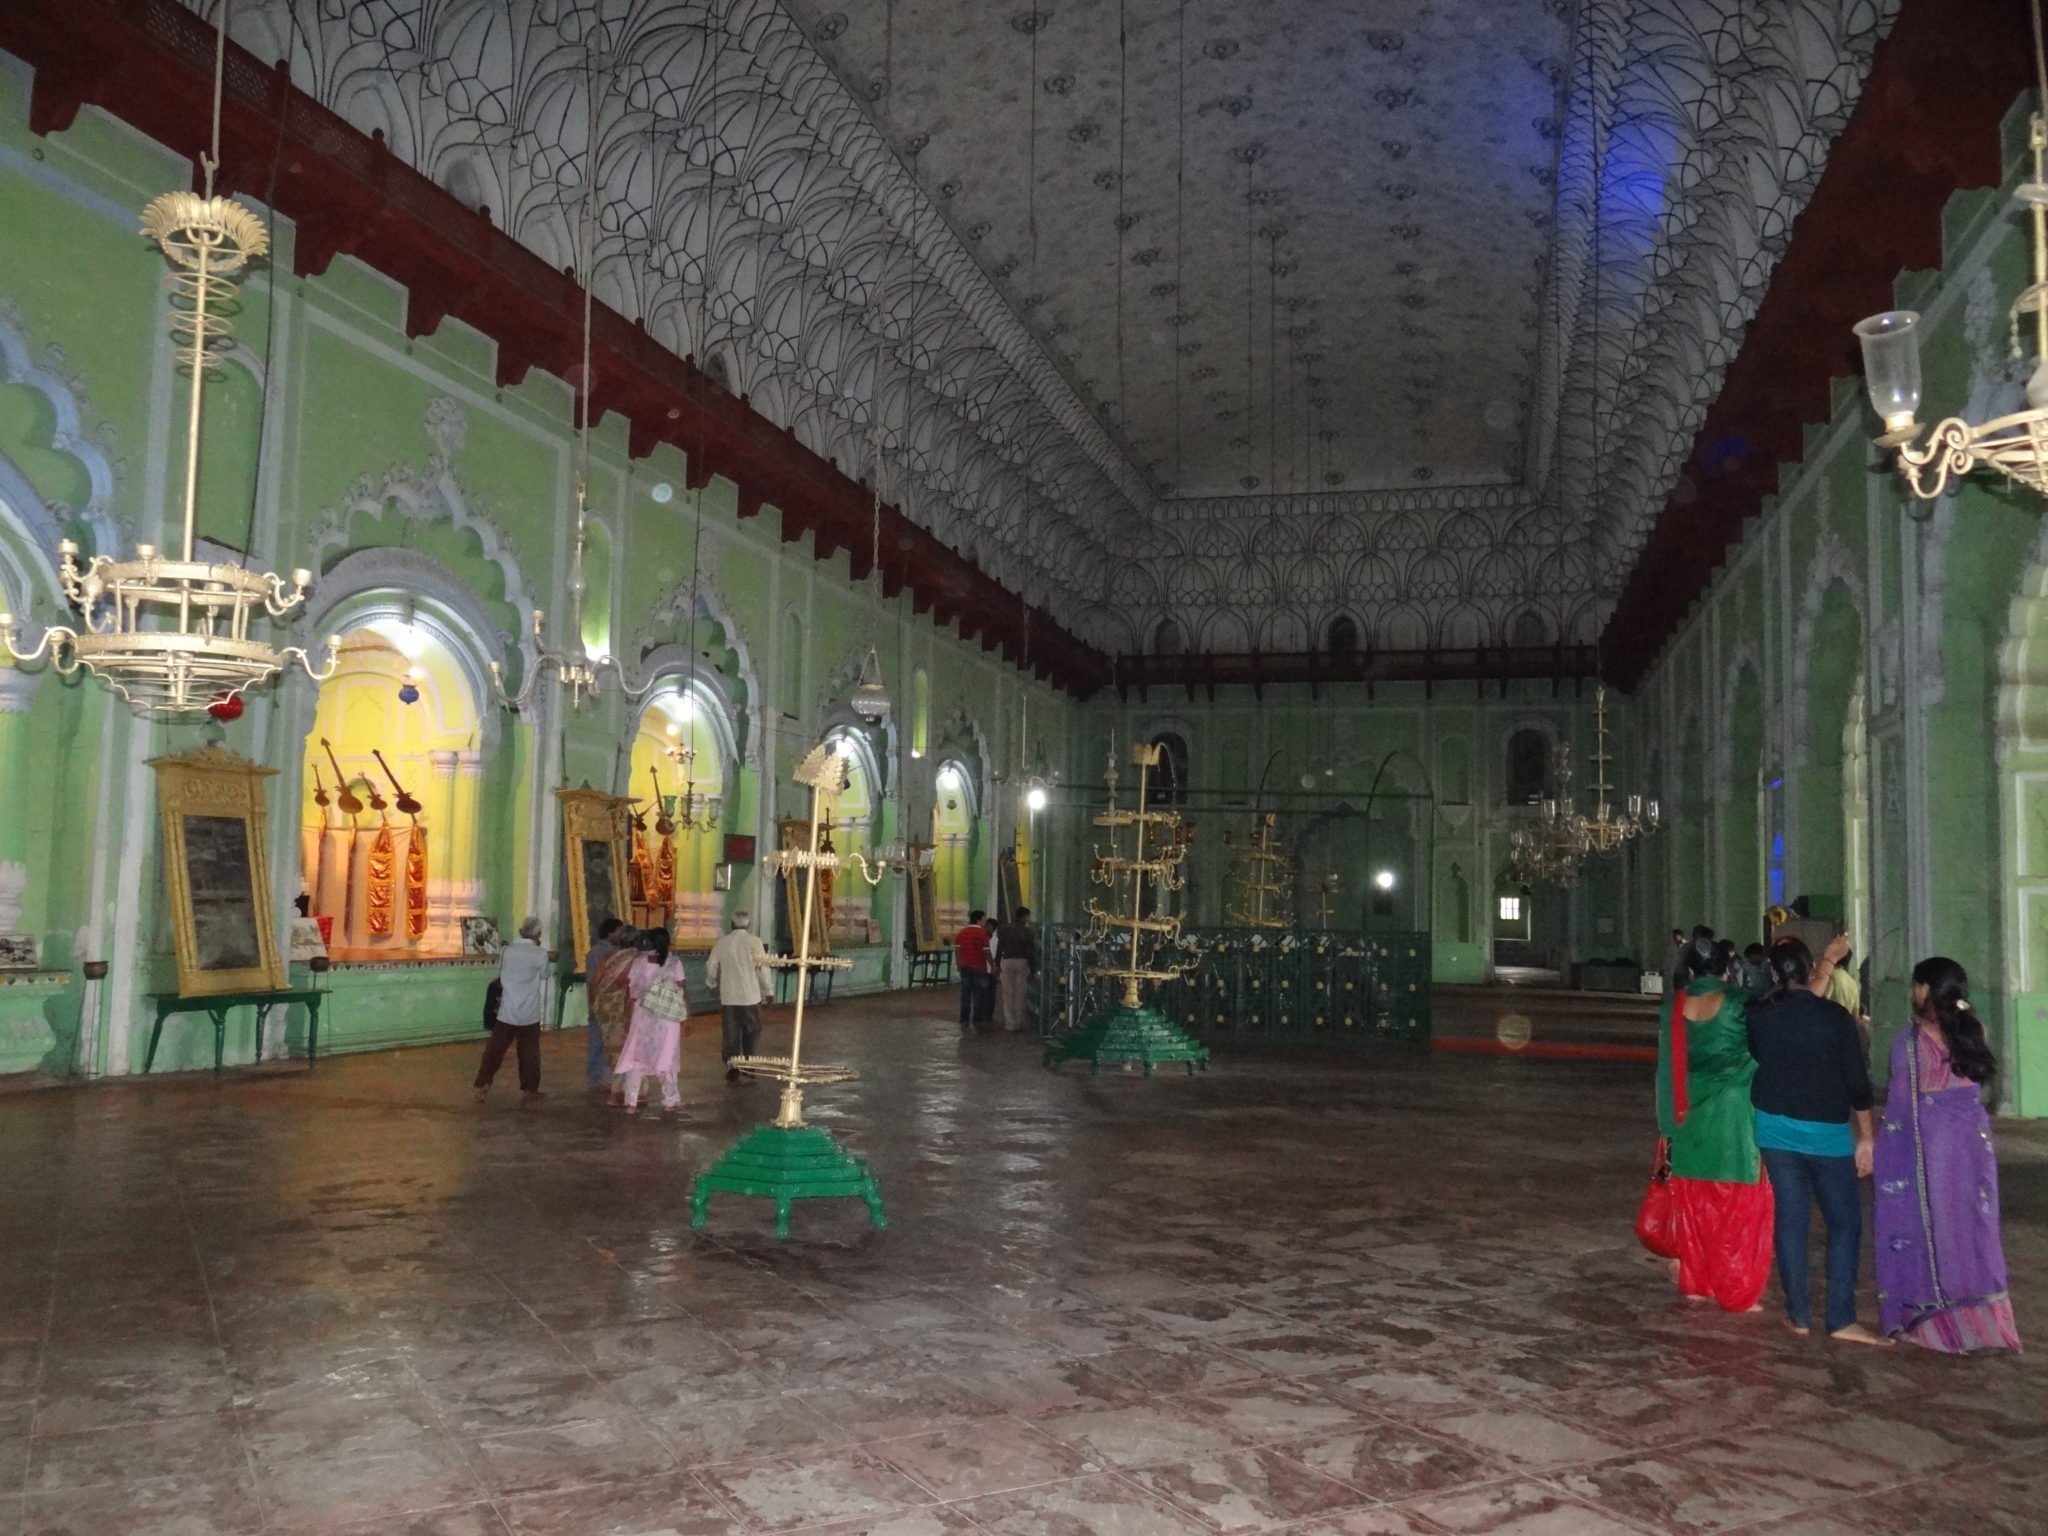 Central Vaulted Chamber with Nawab's Grave